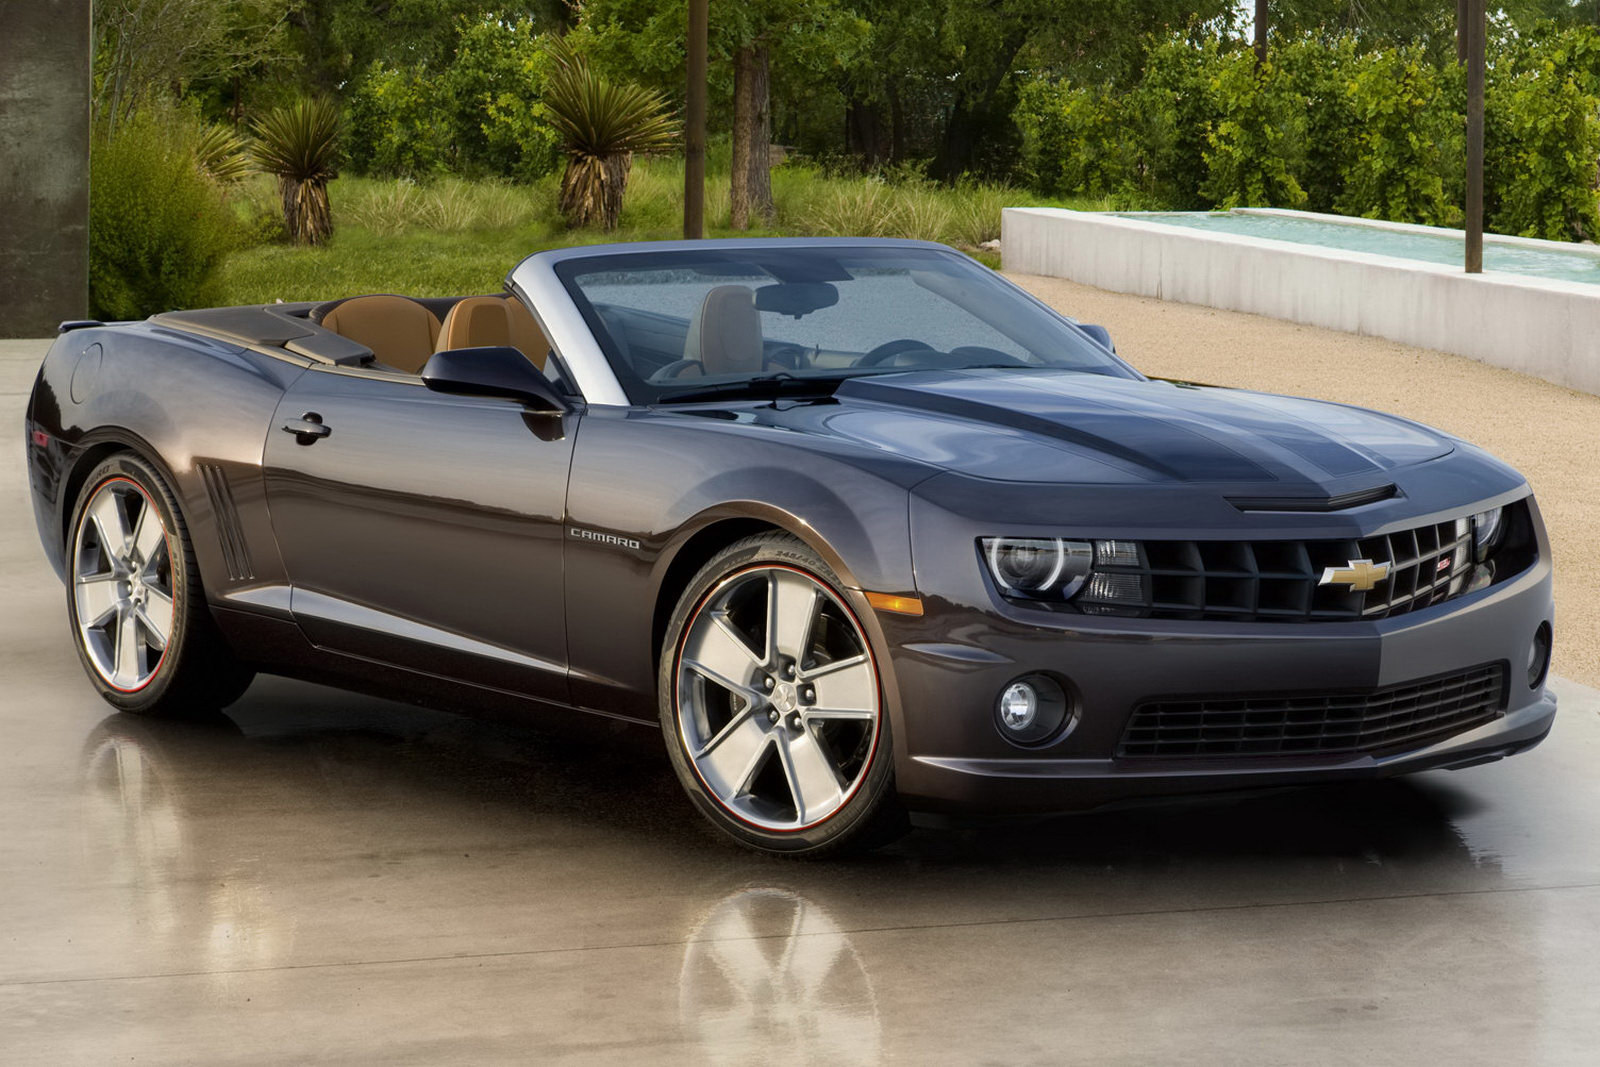 chevrolet camaro convertible goes to super bowl xlv mvp. Black Bedroom Furniture Sets. Home Design Ideas